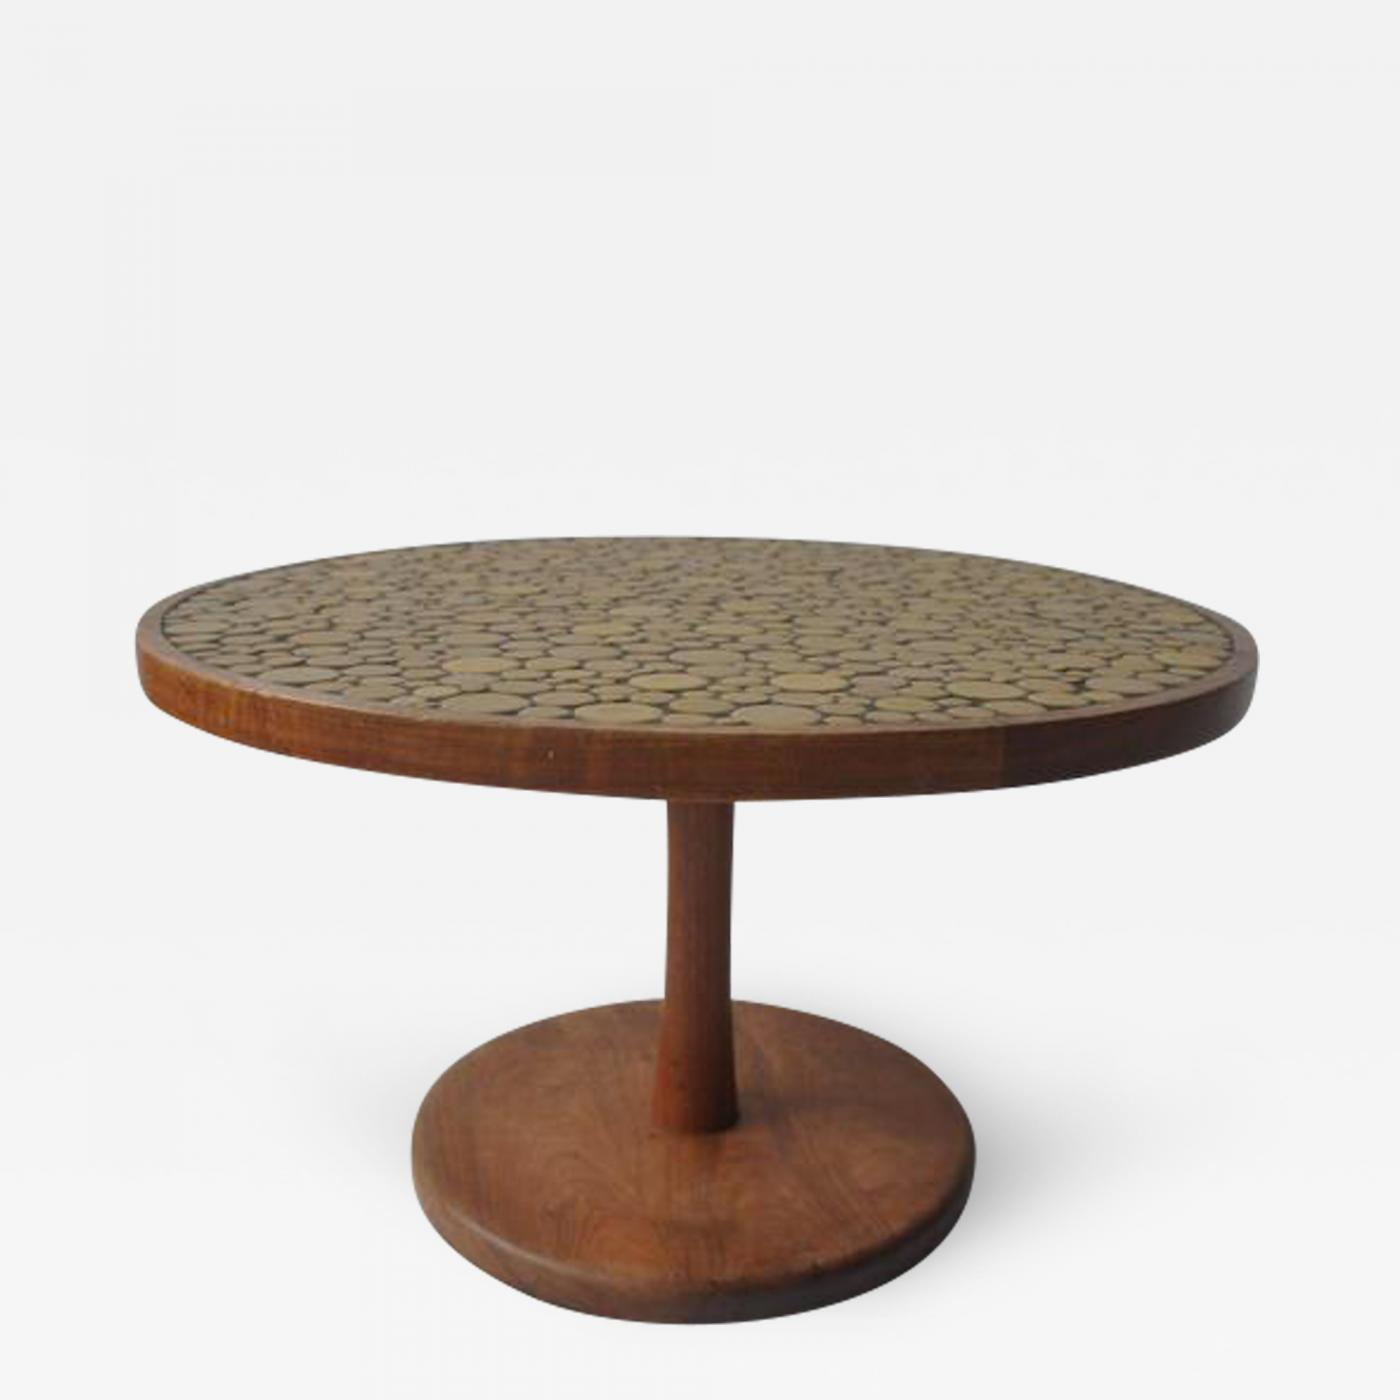 Gordon jane martz ceramic tile top coffee table by gordon and listings furniture tables coffee tables gordon jane martz ceramic tile top geotapseo Choice Image